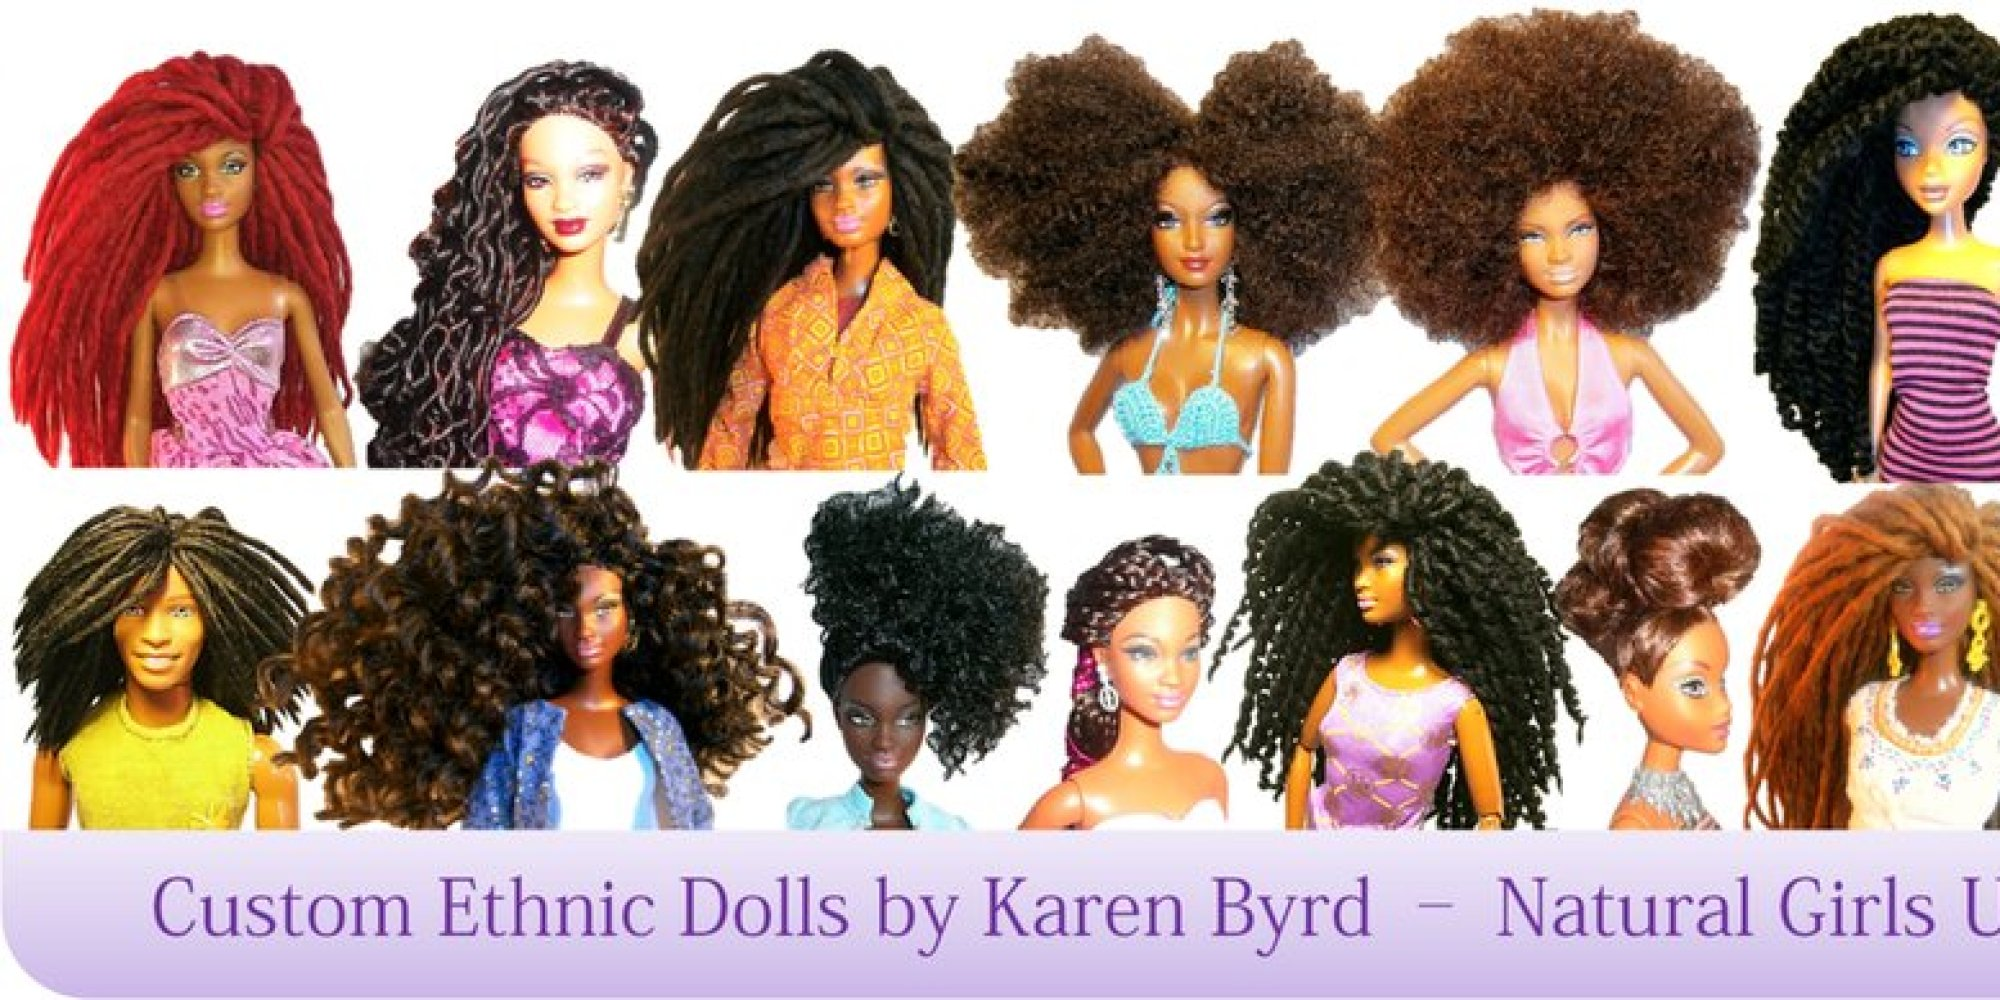 Natural Girls United Gives Dolls Amazing Hair Makeovers